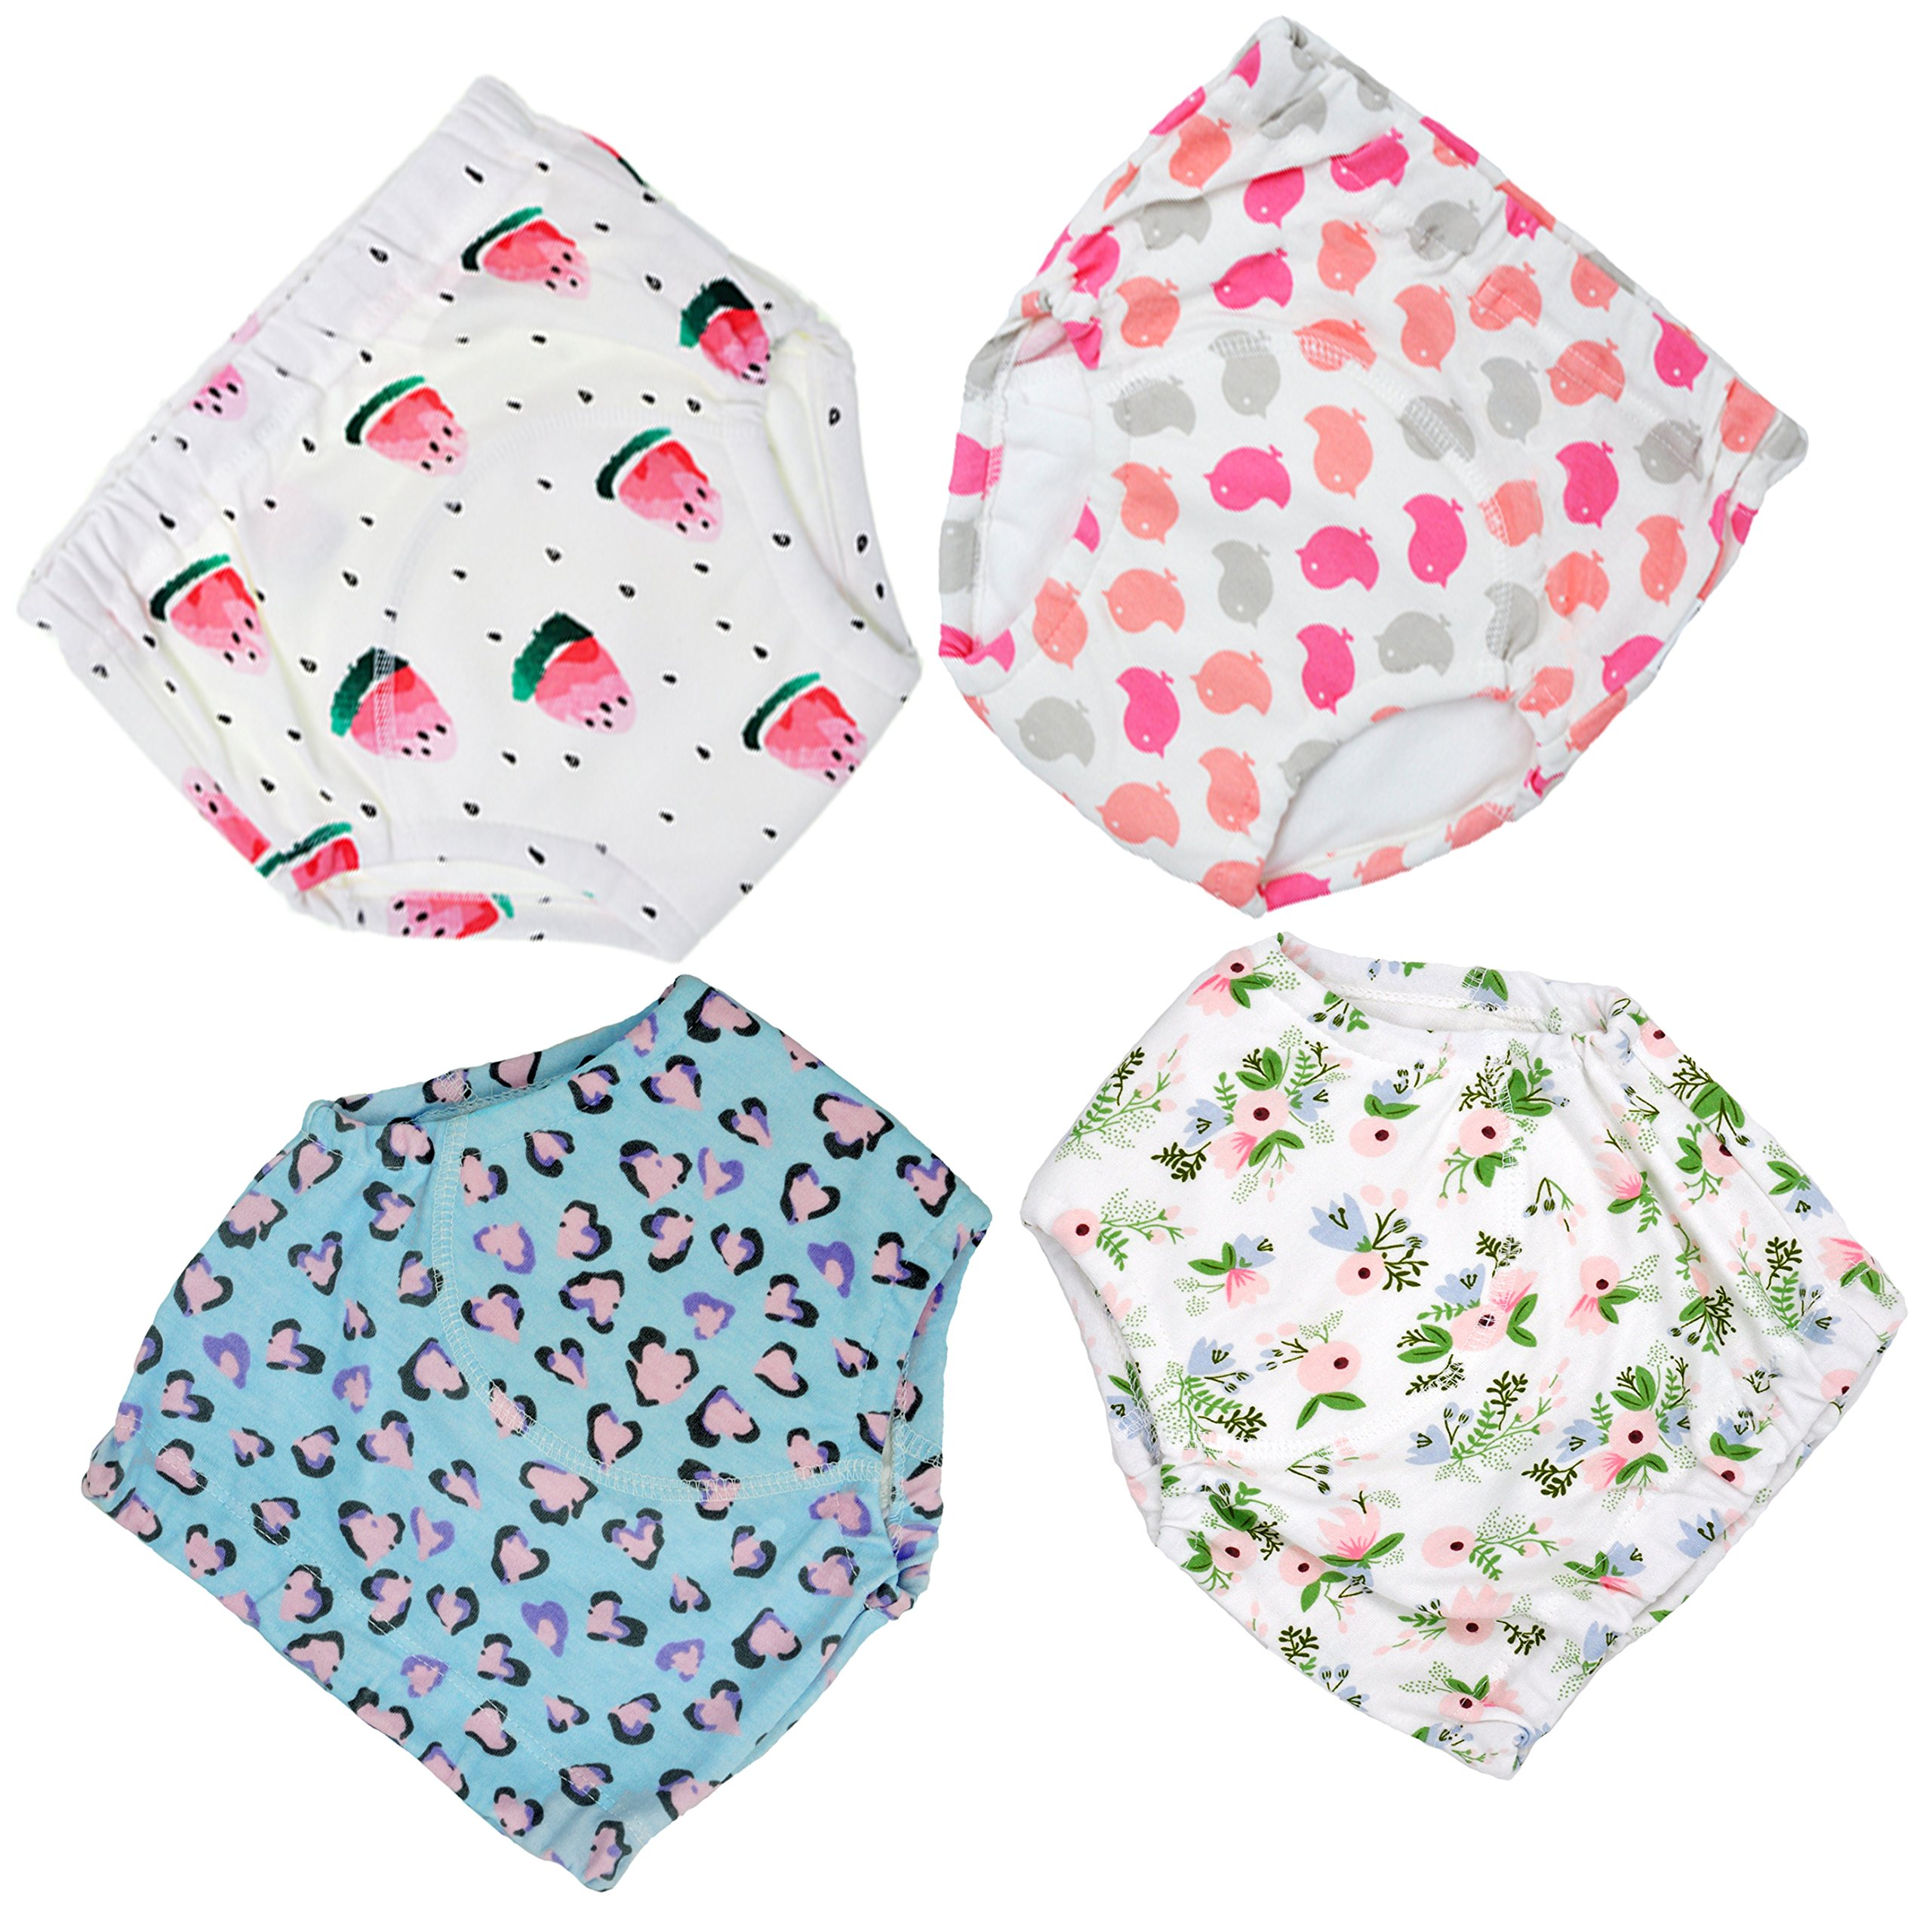 4 Pack Potty Training Pants Padded Underwear For Mom N Bab Dress White Polkadot Size 3t Moomoo Baby And Toddler Girls L